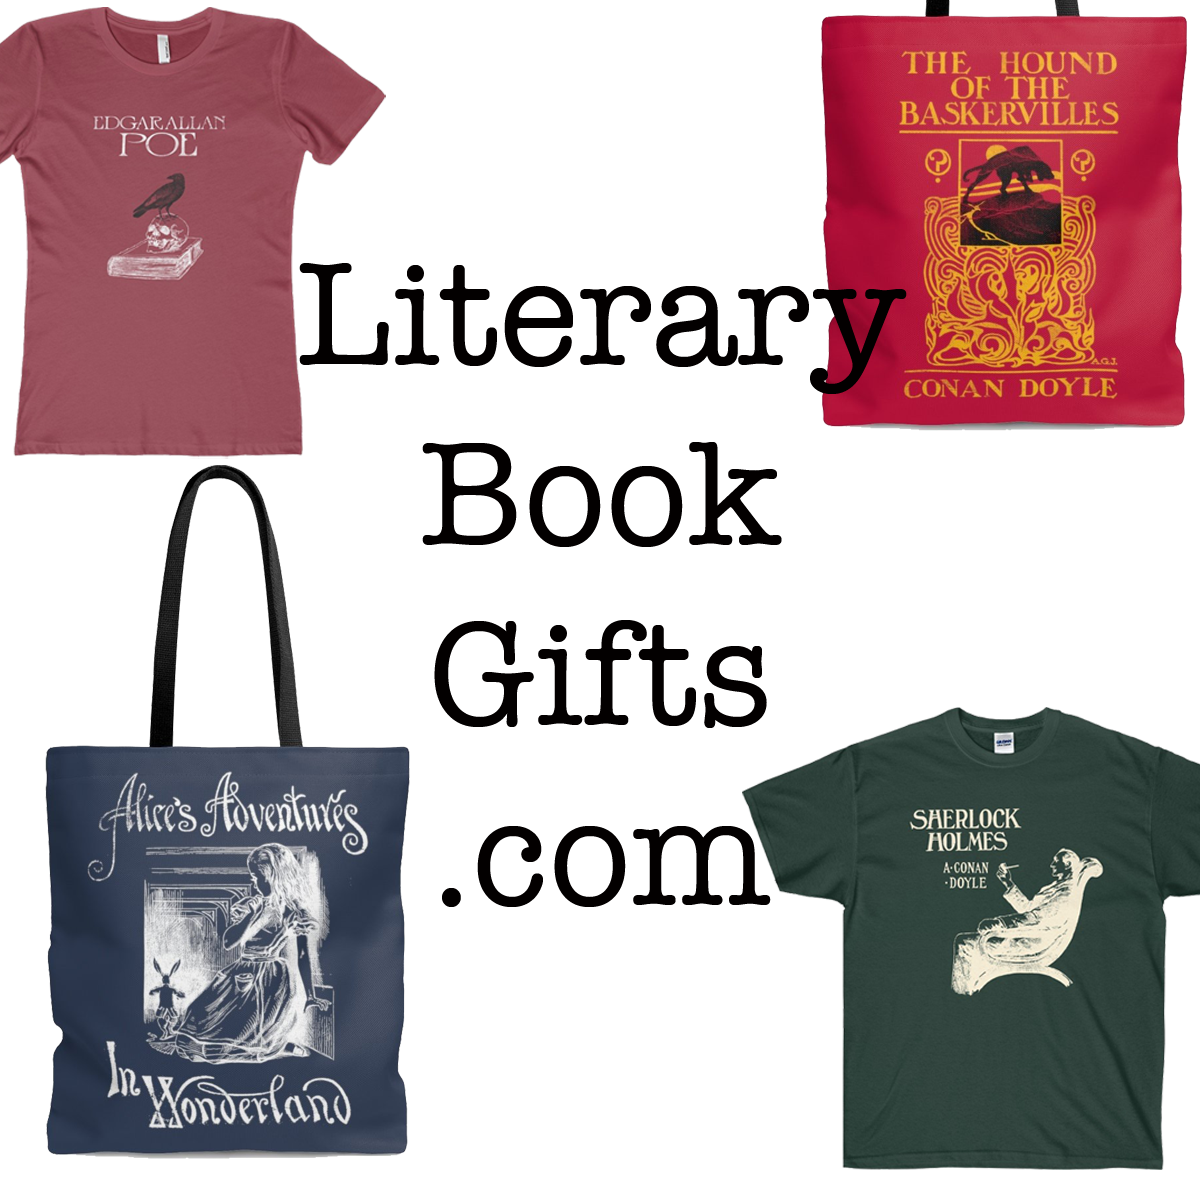 literary-book-gifts-gifts-for-book-lovers.png